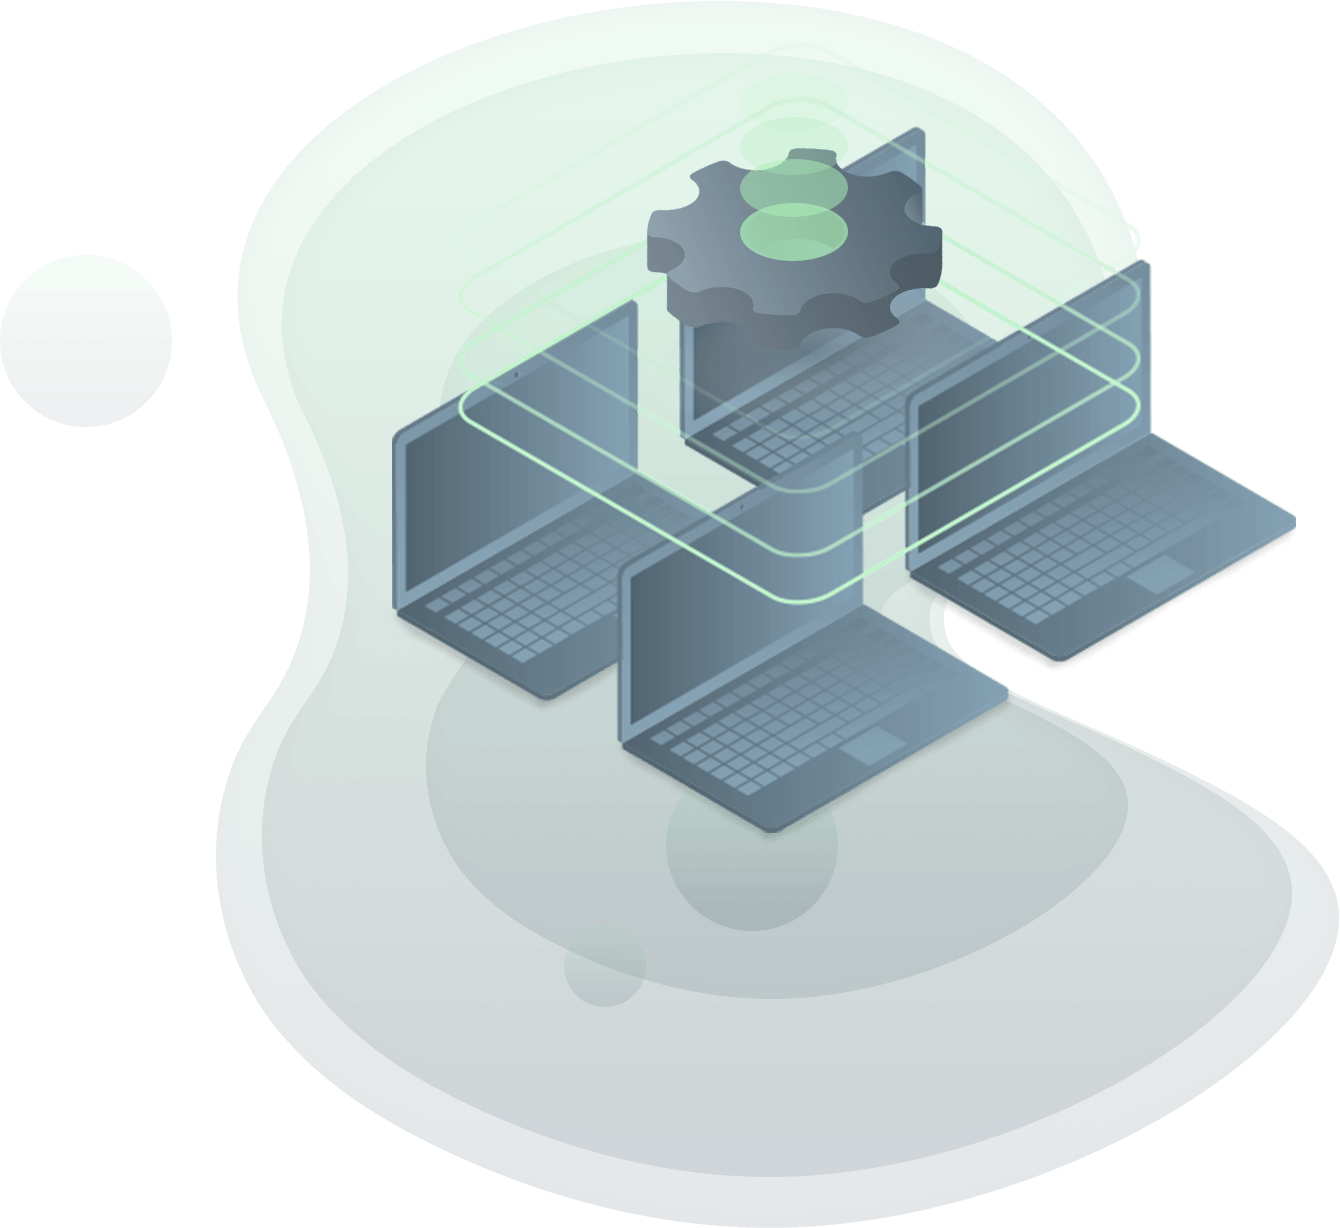 illustration of four computers networked